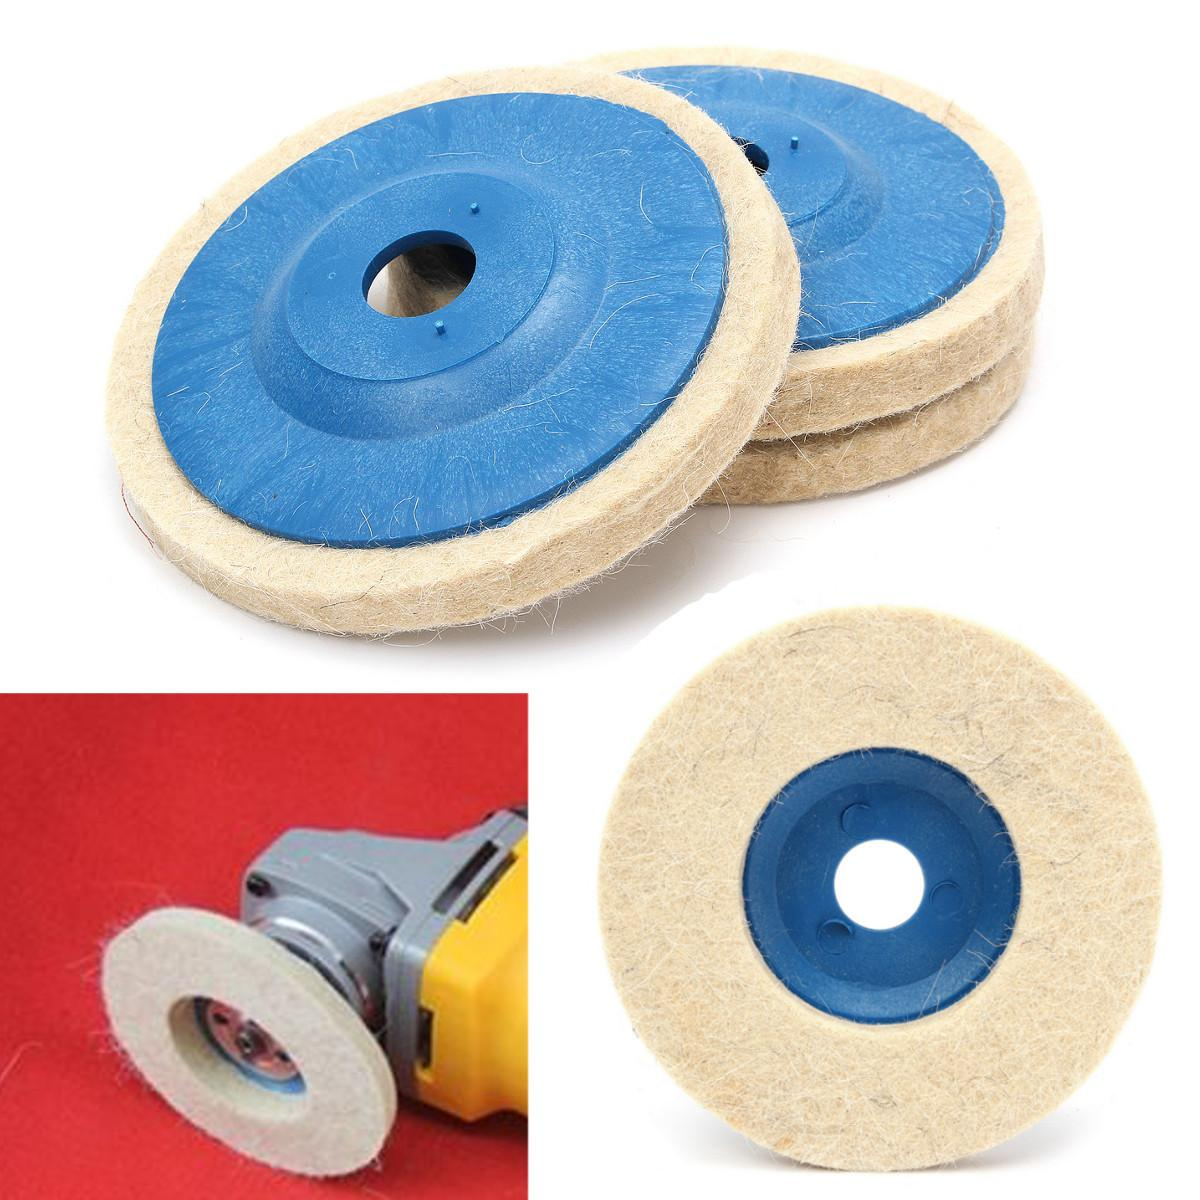 3Pcs Set 100mm Wool Buffing Angle Grinder Wheel Felt Polishing Disc Pad Tool For Sander Polishing Disc Buffing Car Polisher